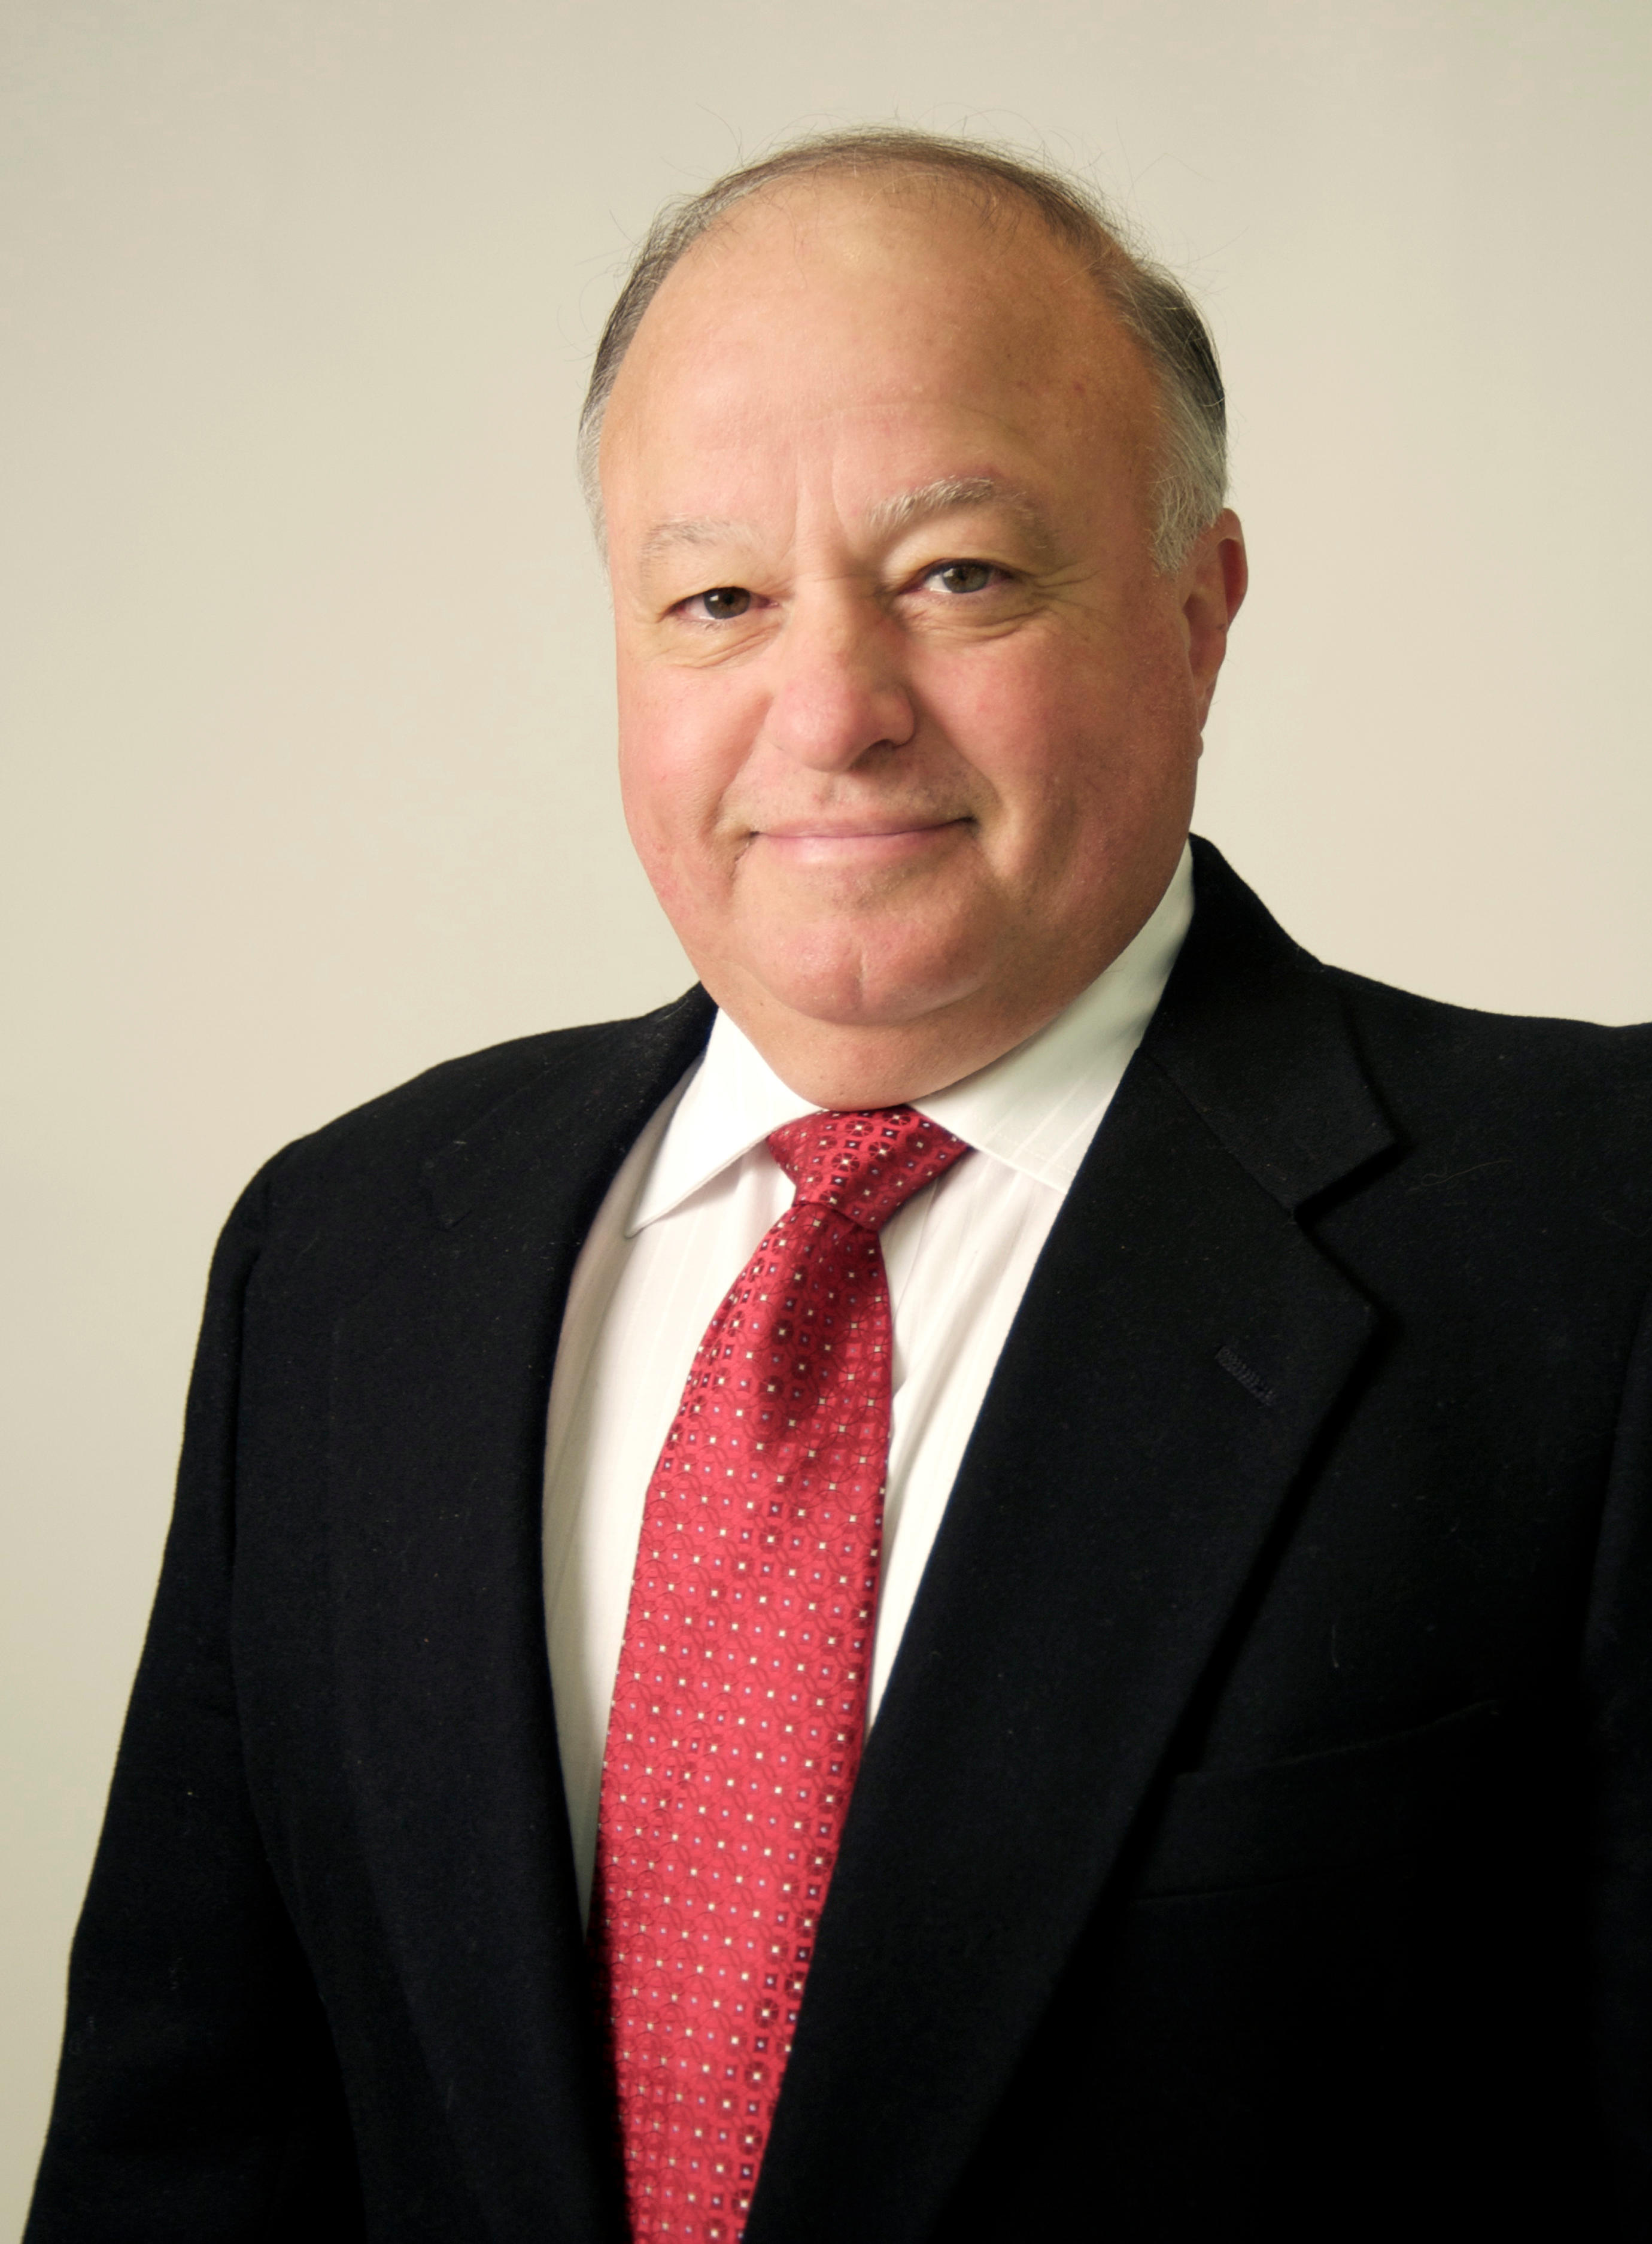 Family Practice Physician in NY Bethpage 11714 Anthony Arcati, MD 530 Hicksville Rd  (516)937-5000